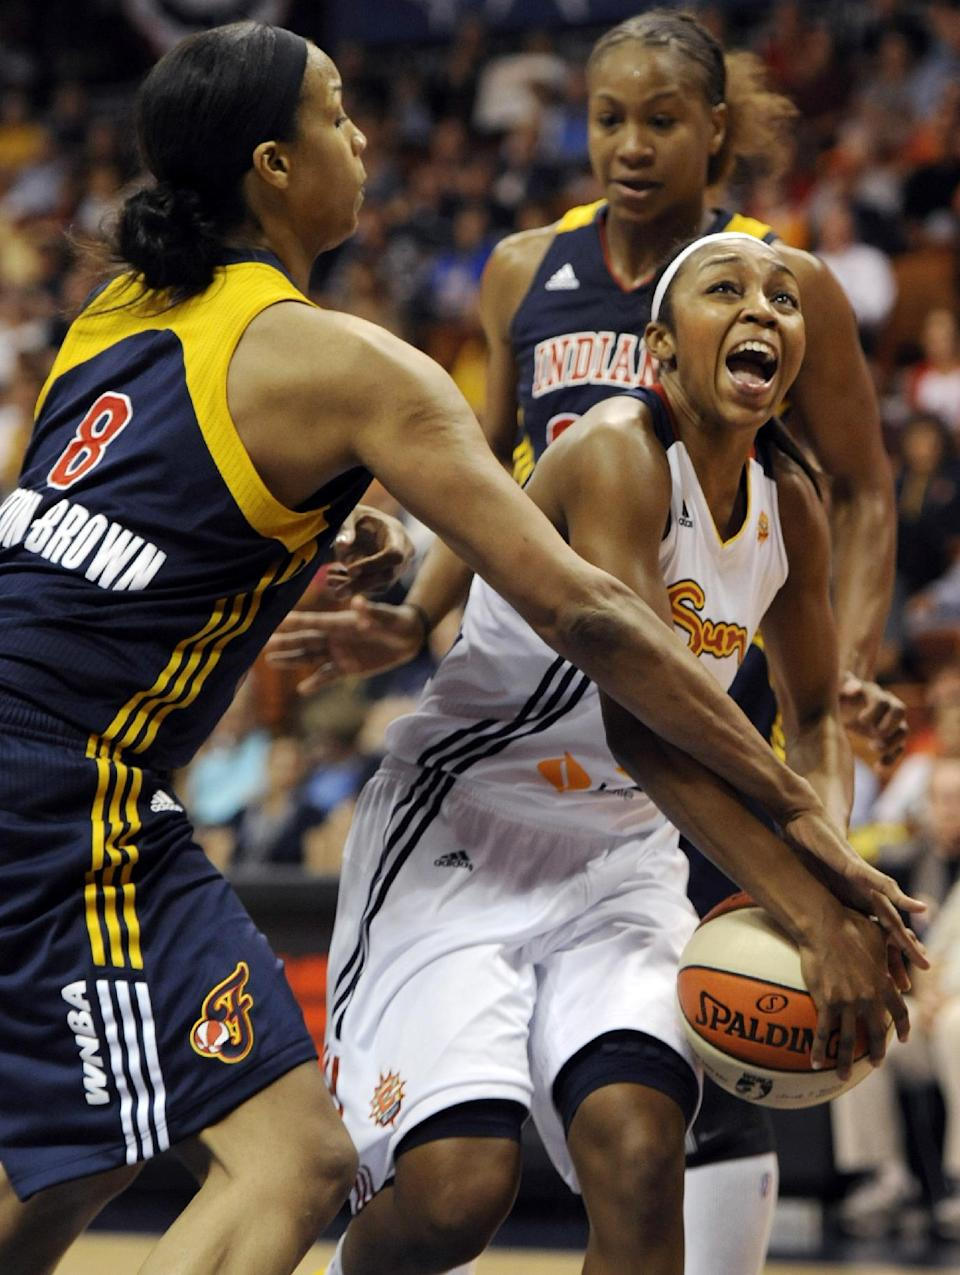 Connecticut Sun's Renee Montgomery, right, is pressured by Indiana Fever's Tammy Sutton-Brown during the first half of Game 1 of the WNBA basketball Eastern Conference Finals in Uncasville, Conn., Friday, Oct. 5, 2012. (AP Photo/Jessica Hill)